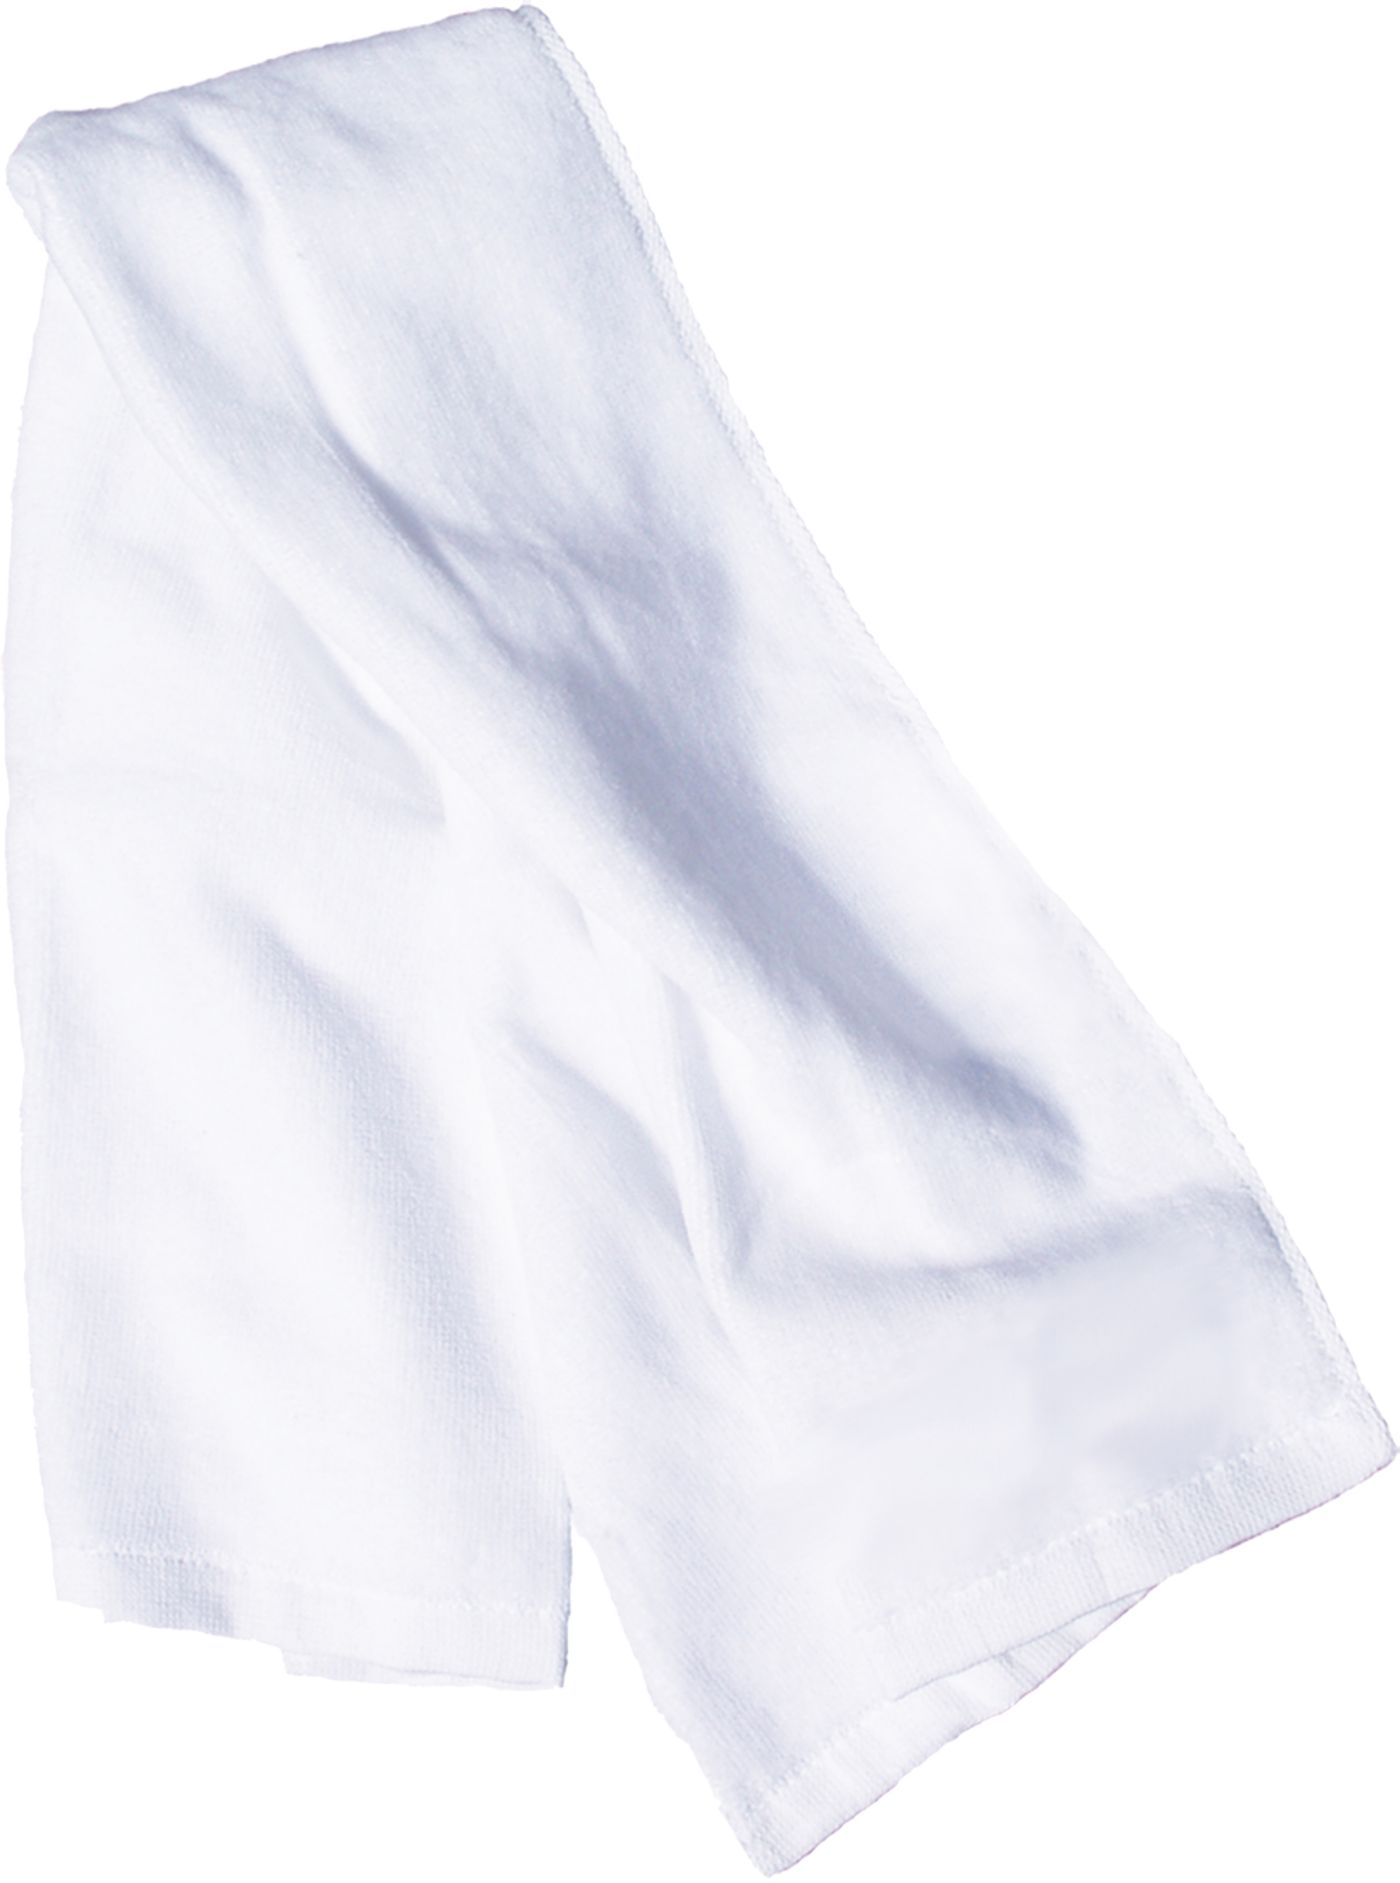 Tourna Sport Tennis Towel